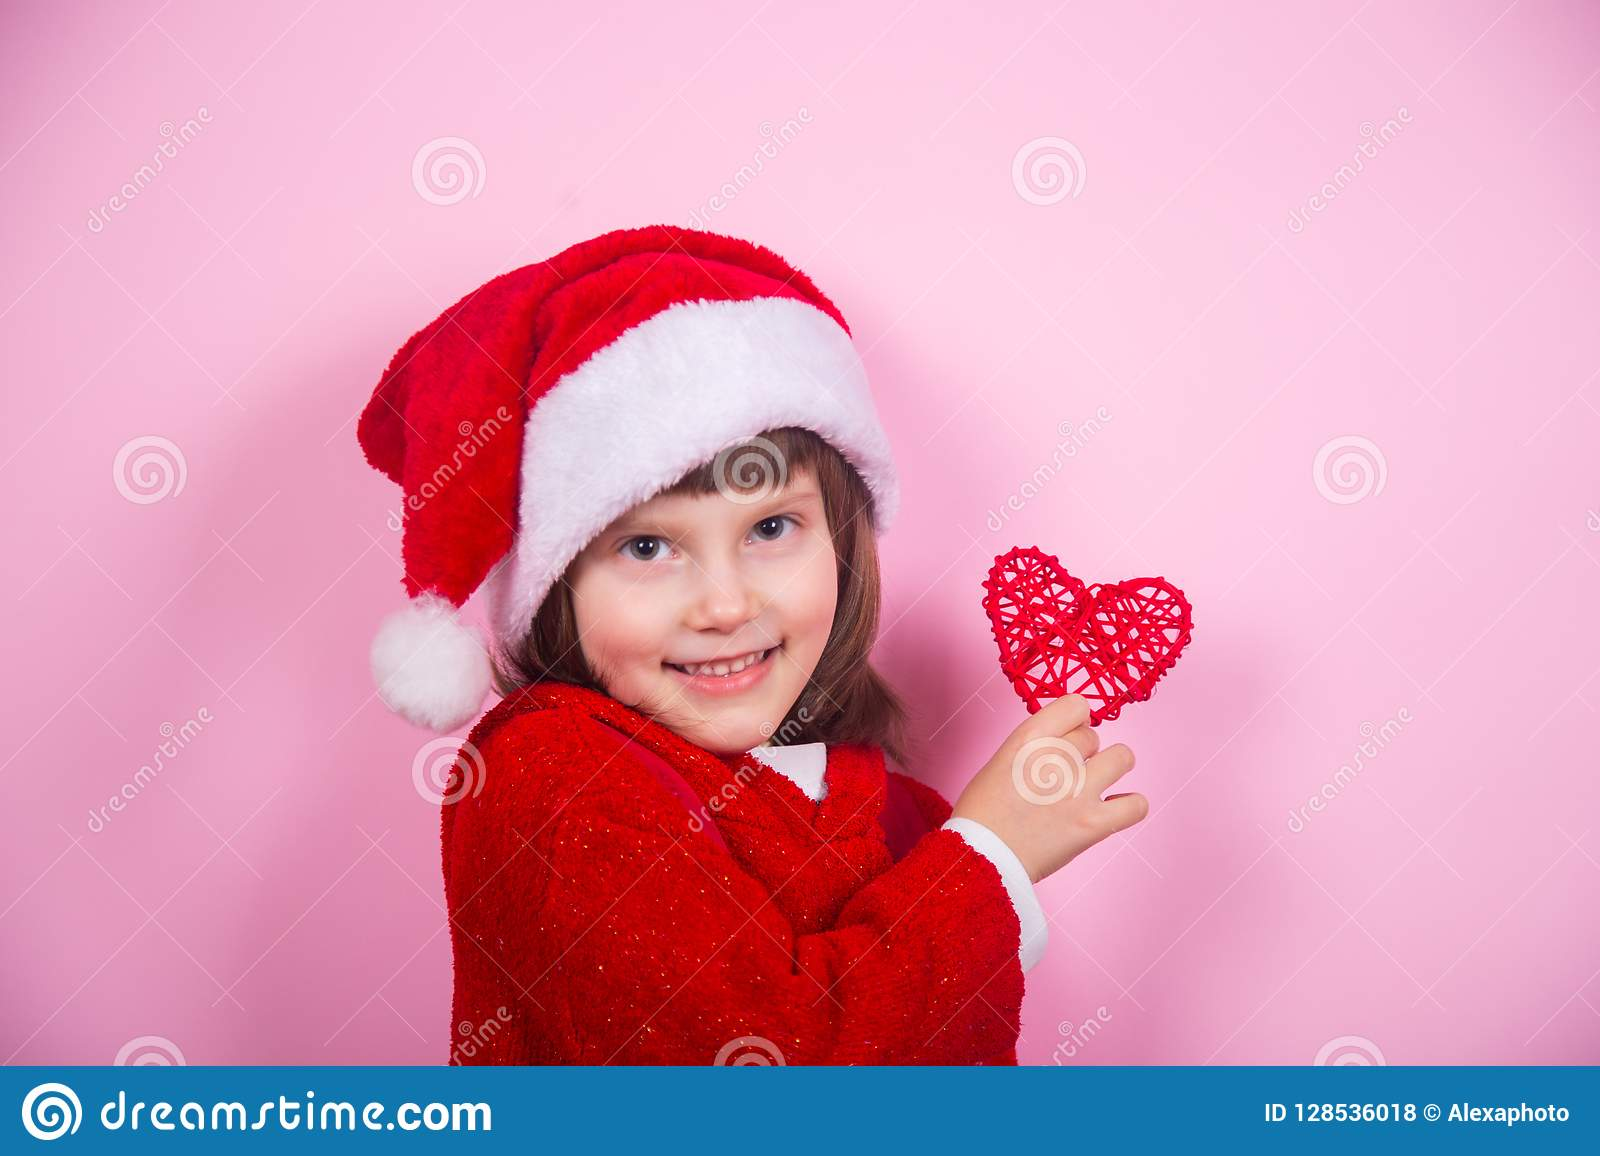 Cute smiling little girl in Santa hat and Christmas costume holding red  heart in studio on 9284b490c55